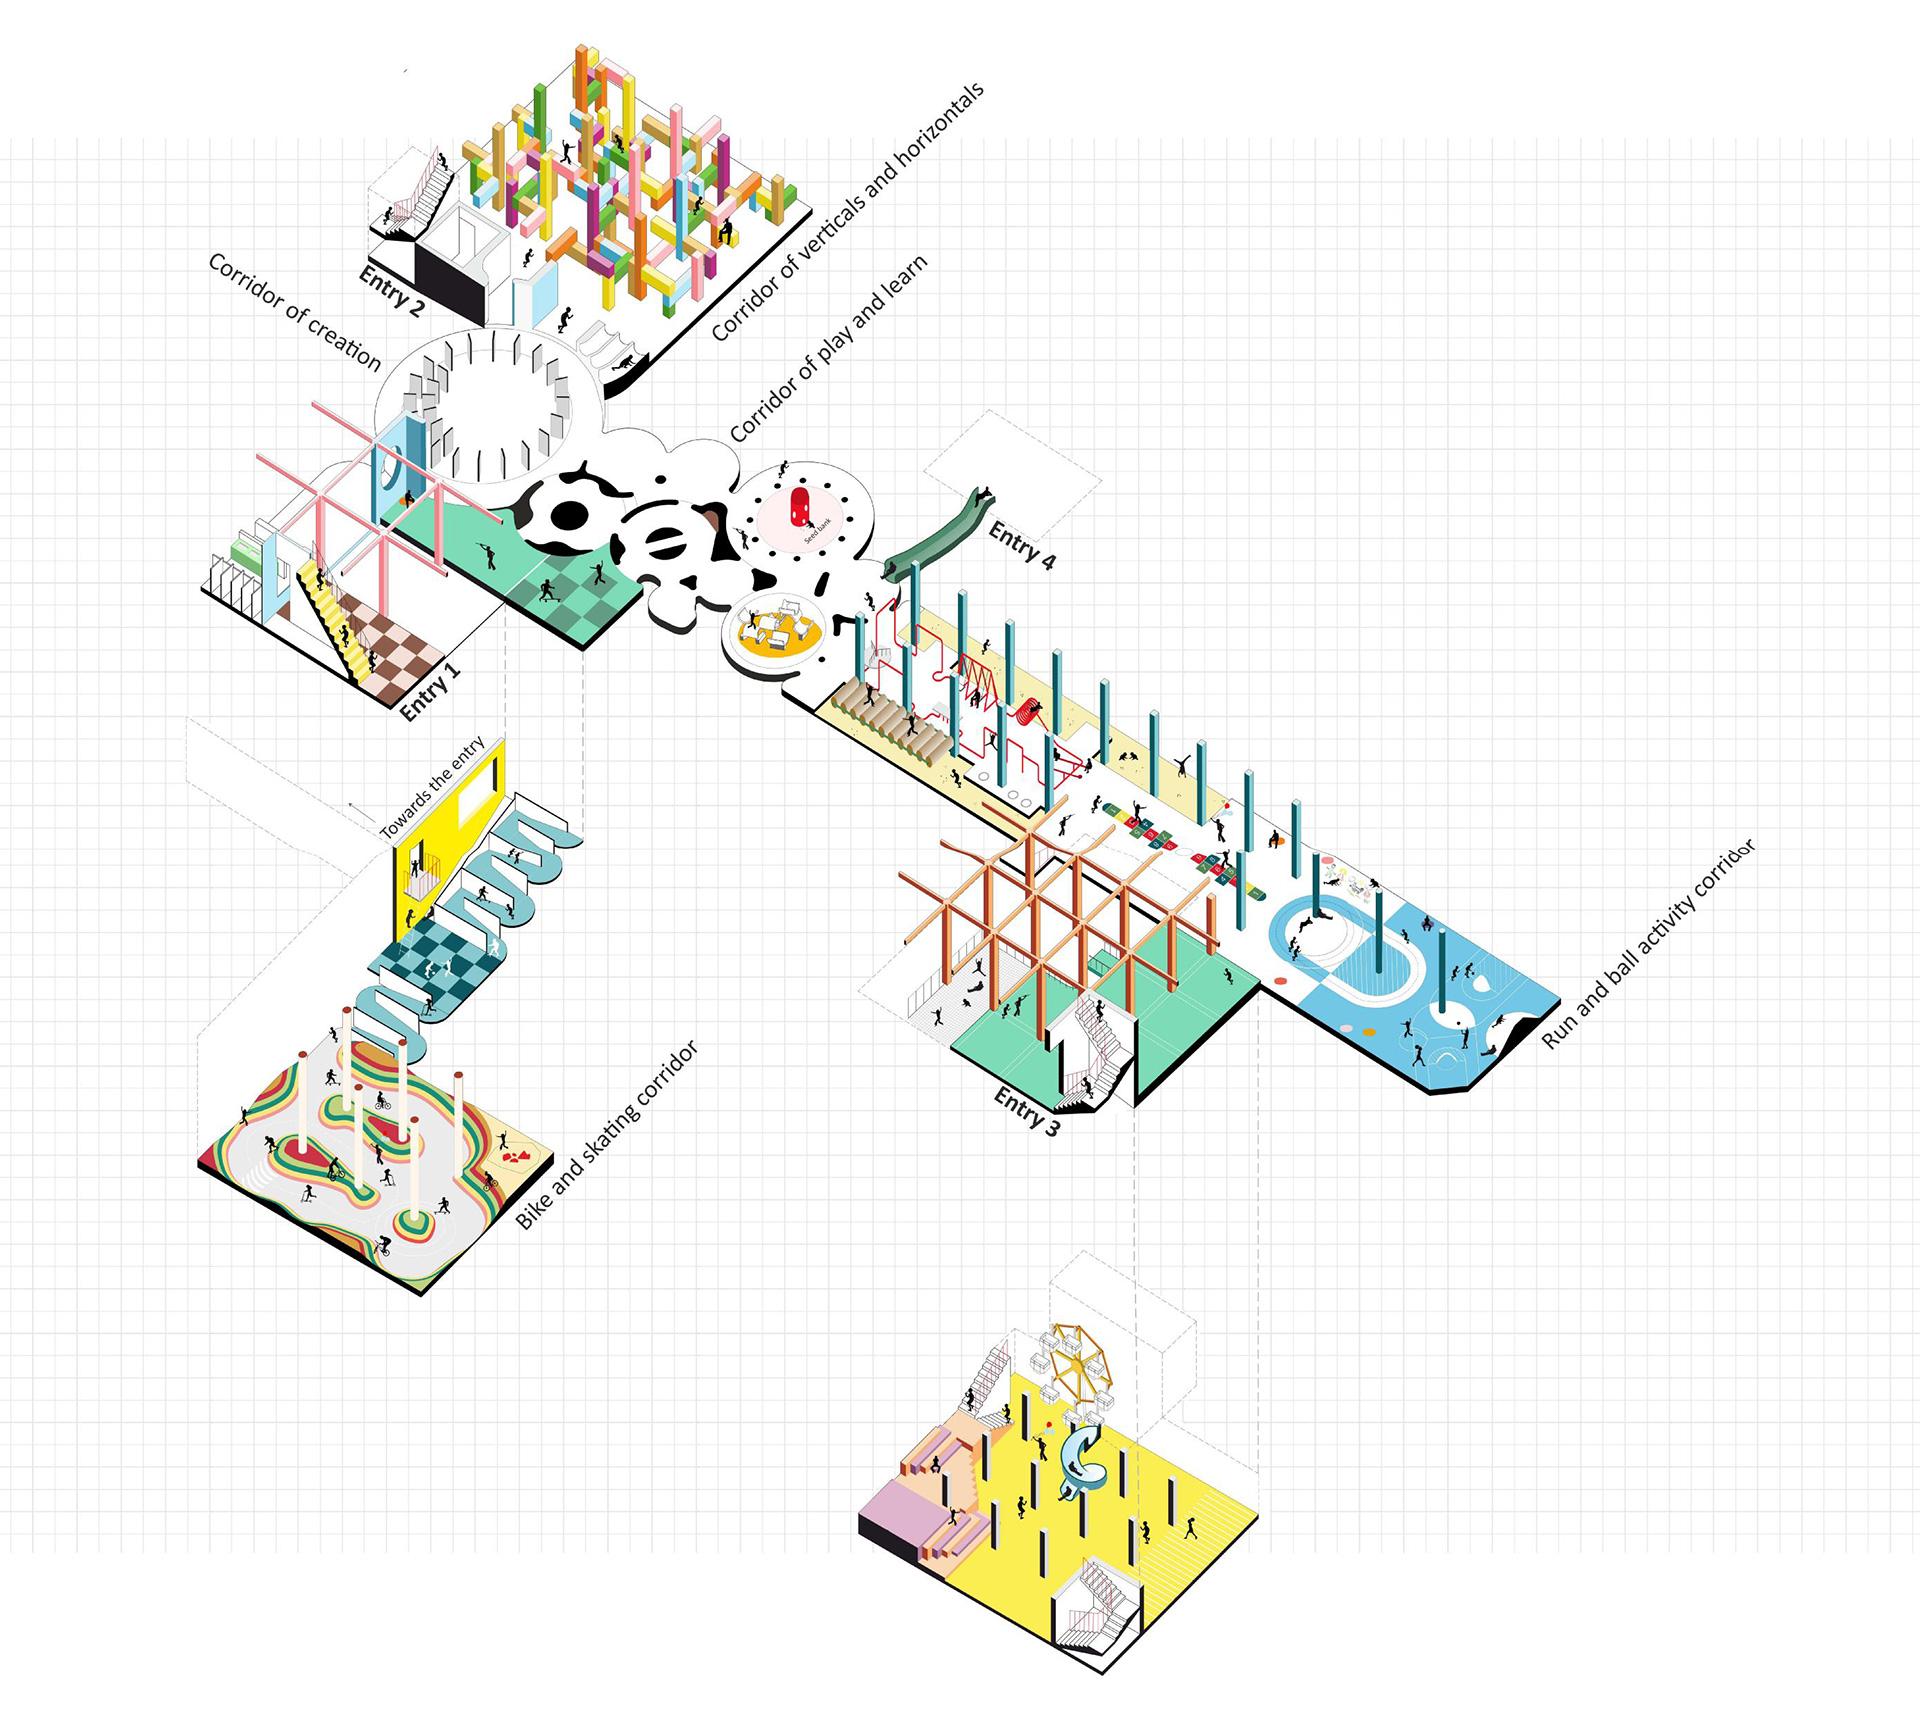 Exploded isometric view of different play areas | Children Uprooted | Tanay Bothara | STIRworld